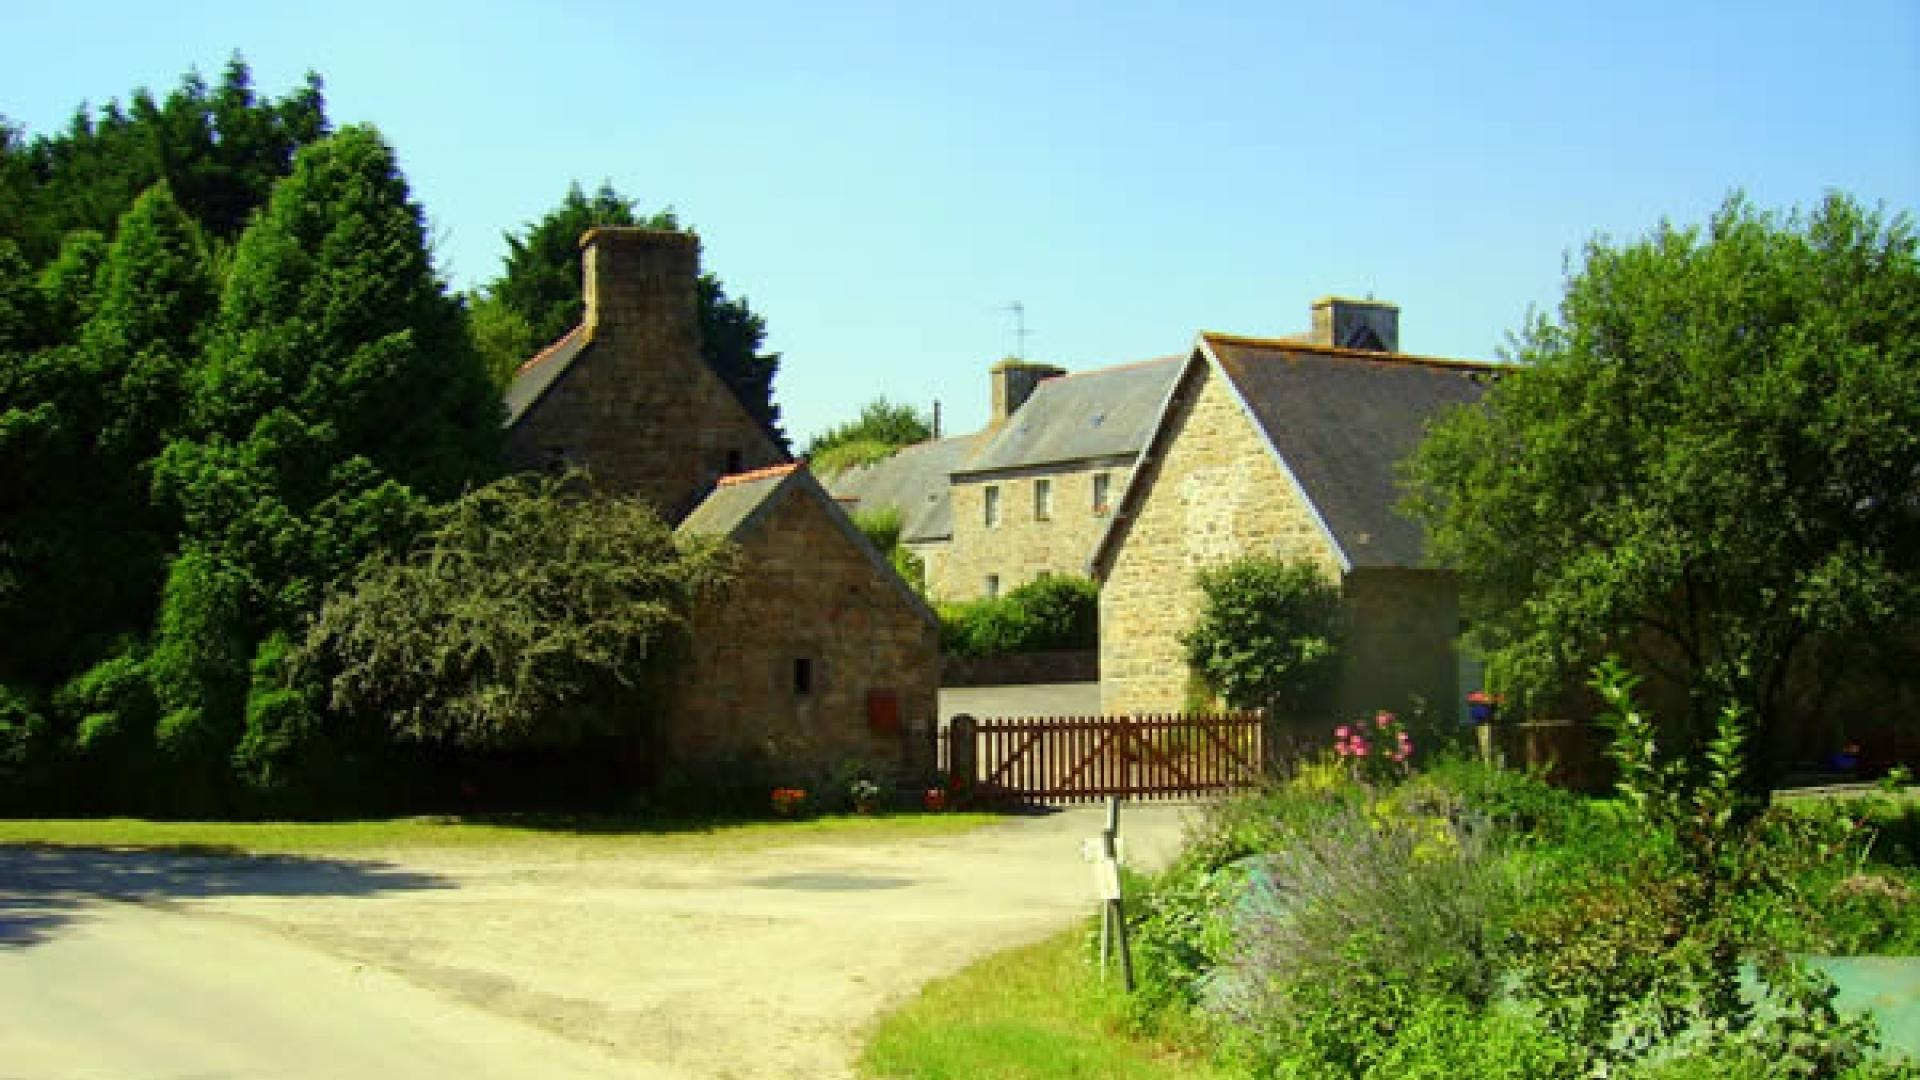 4 Bedroom Private cottage in Brittany, France